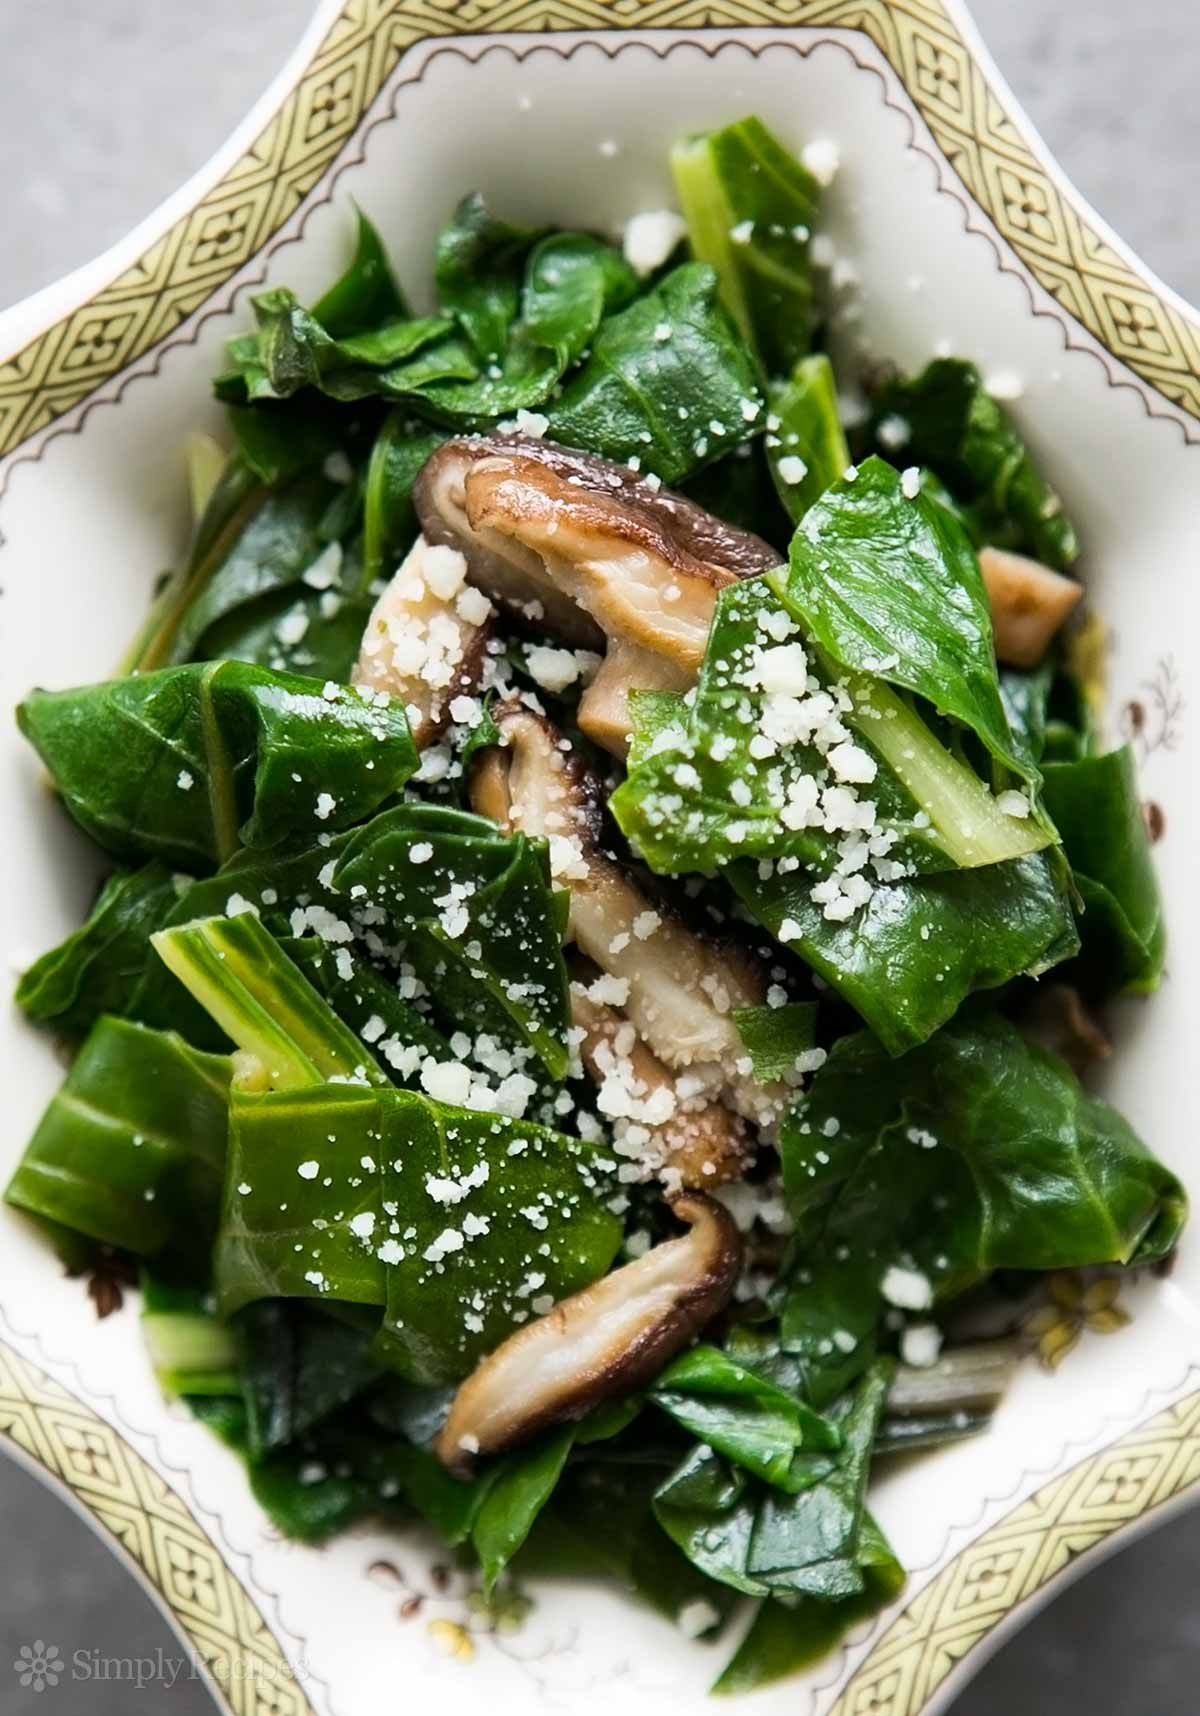 Swiss chard sautéed with shiitake mushrooms and sprinkled with Parmesan cheese. ~ SimplyRecipes.com